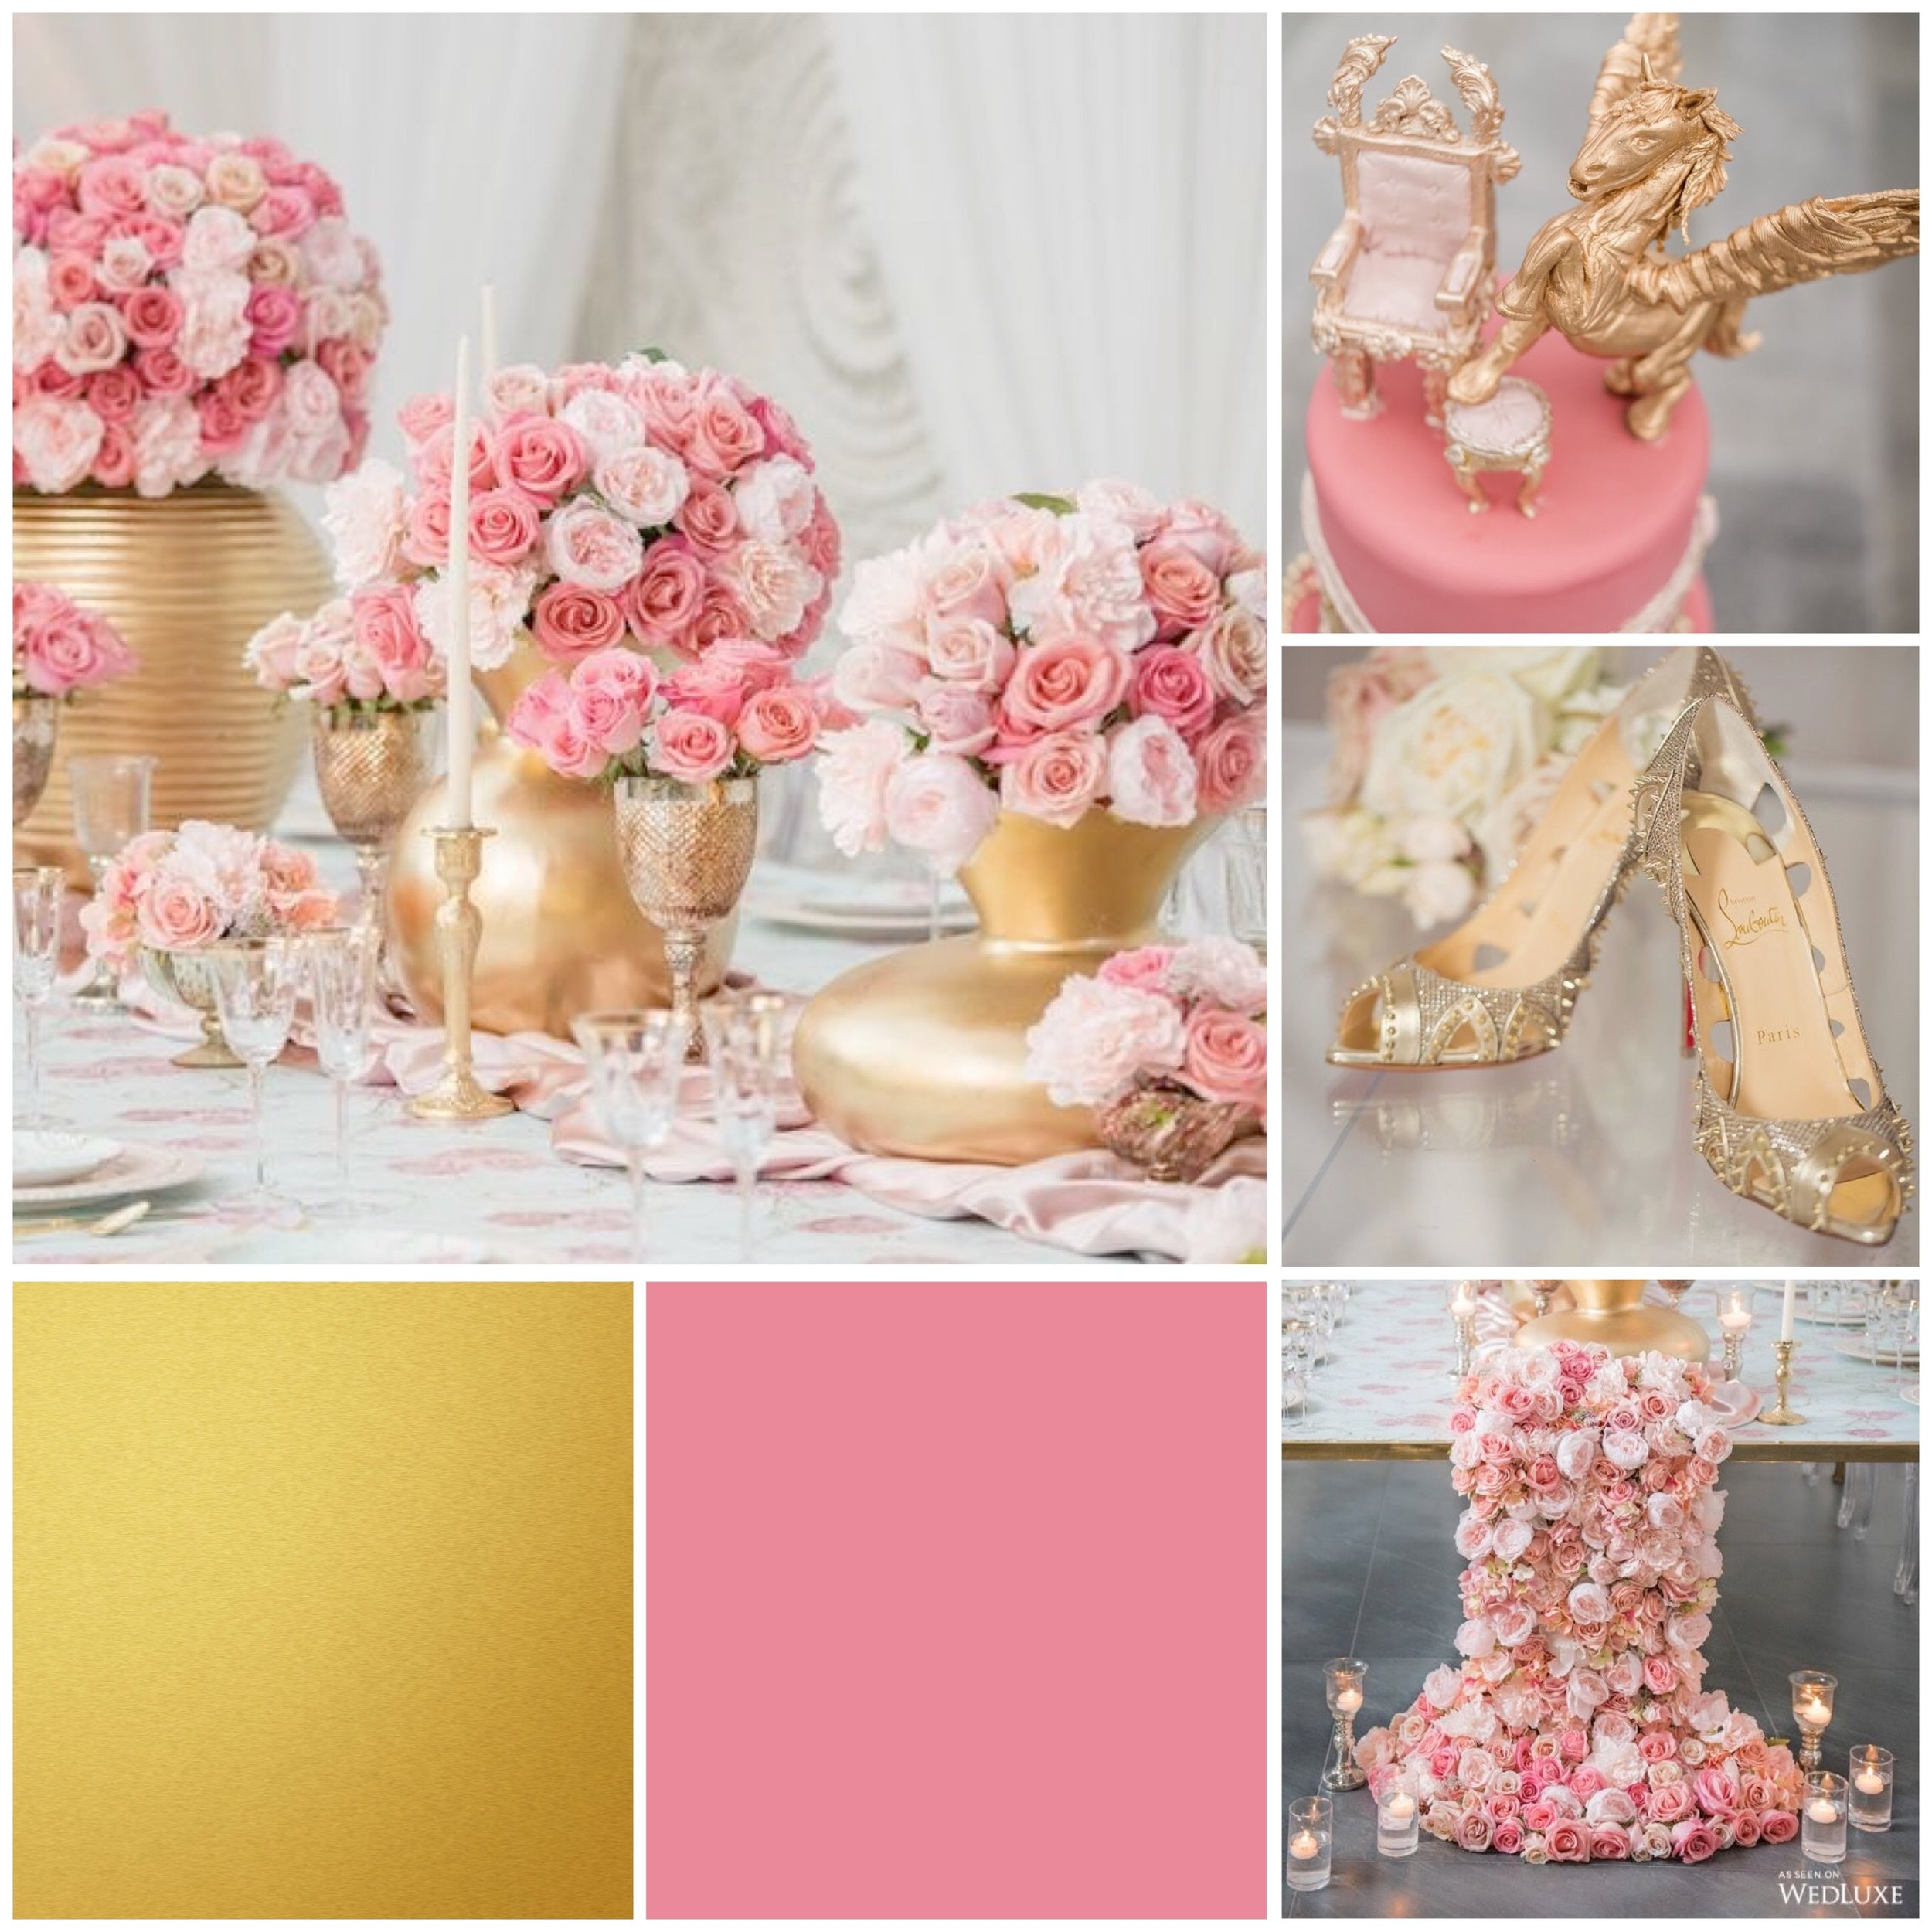 Strawberry Ice & Gold mood board designed by Luxe by Minihaha & co.